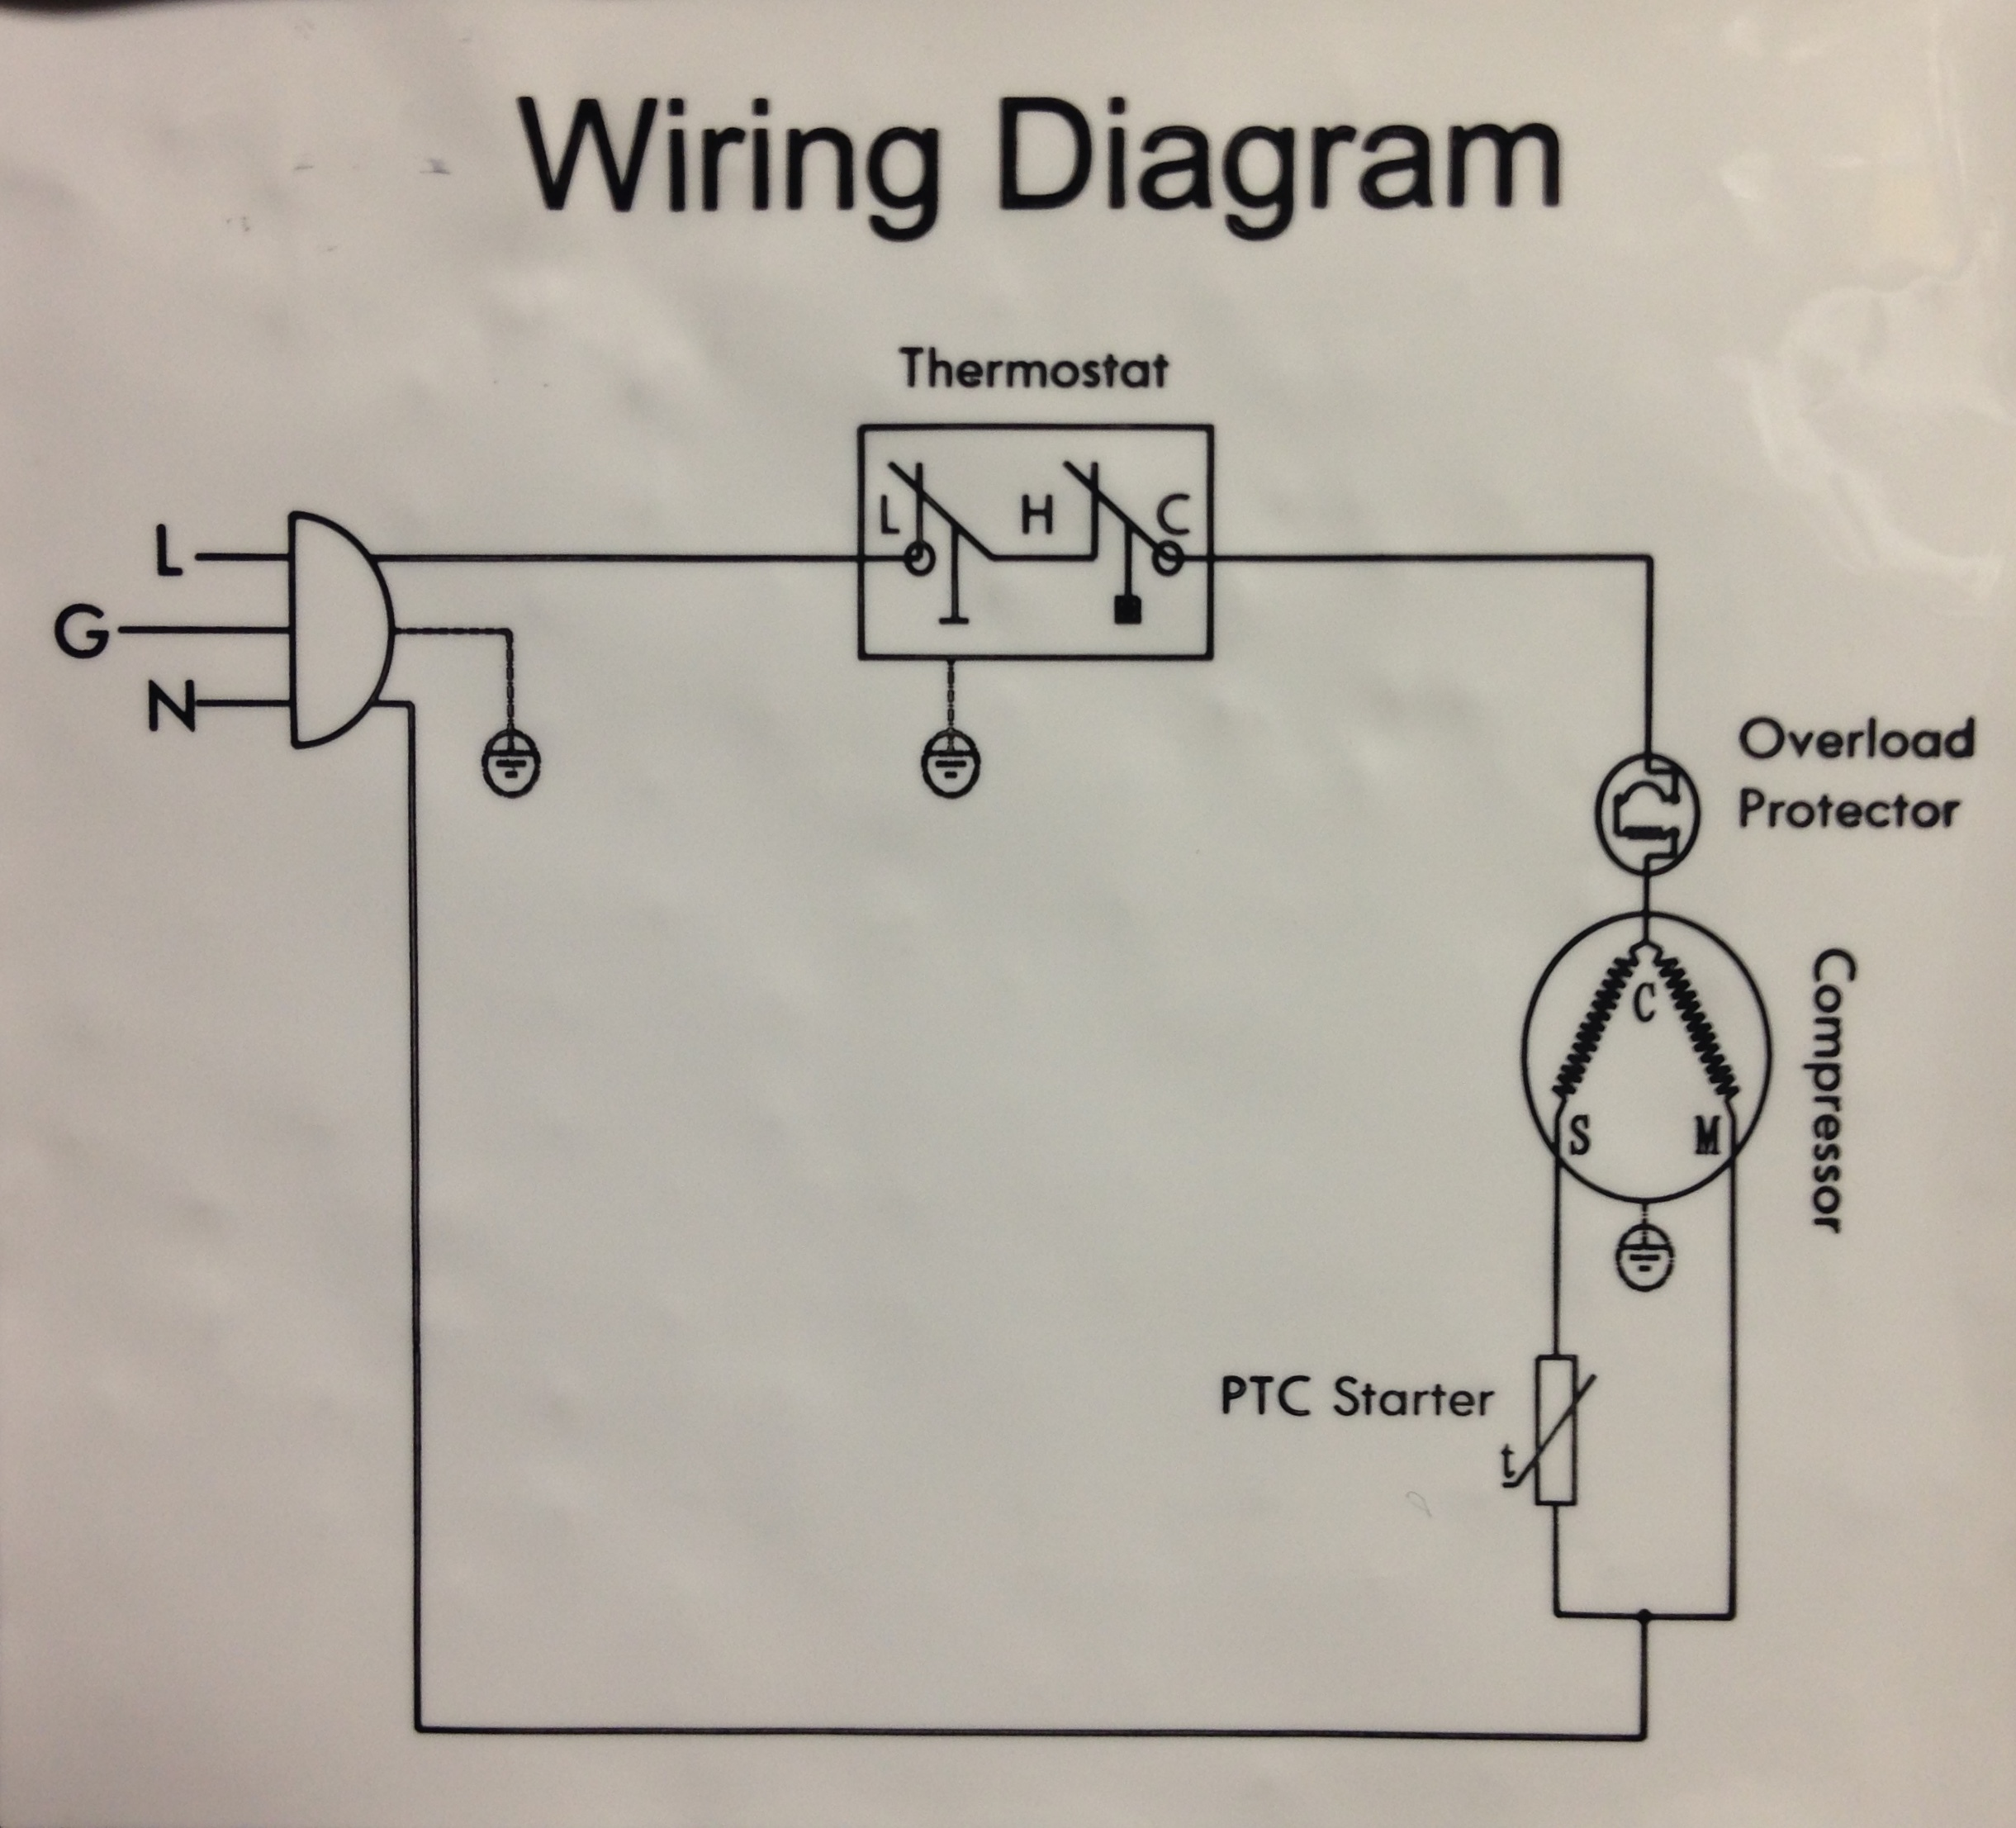 Fridge Wire Diagram